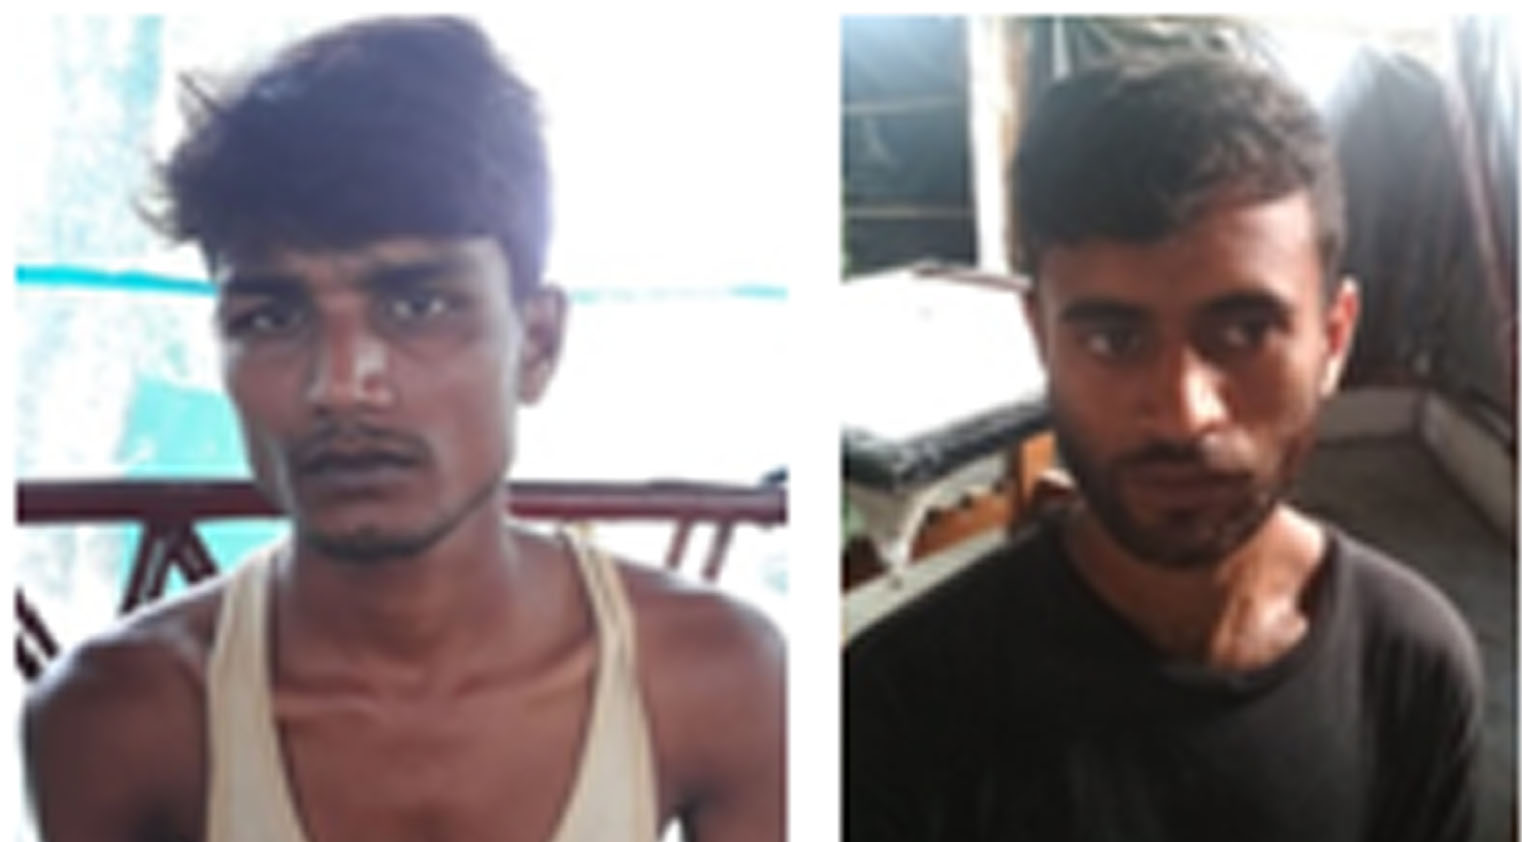 BSF apprehended two Indian cattle smugglers along with cattle in two separate operations